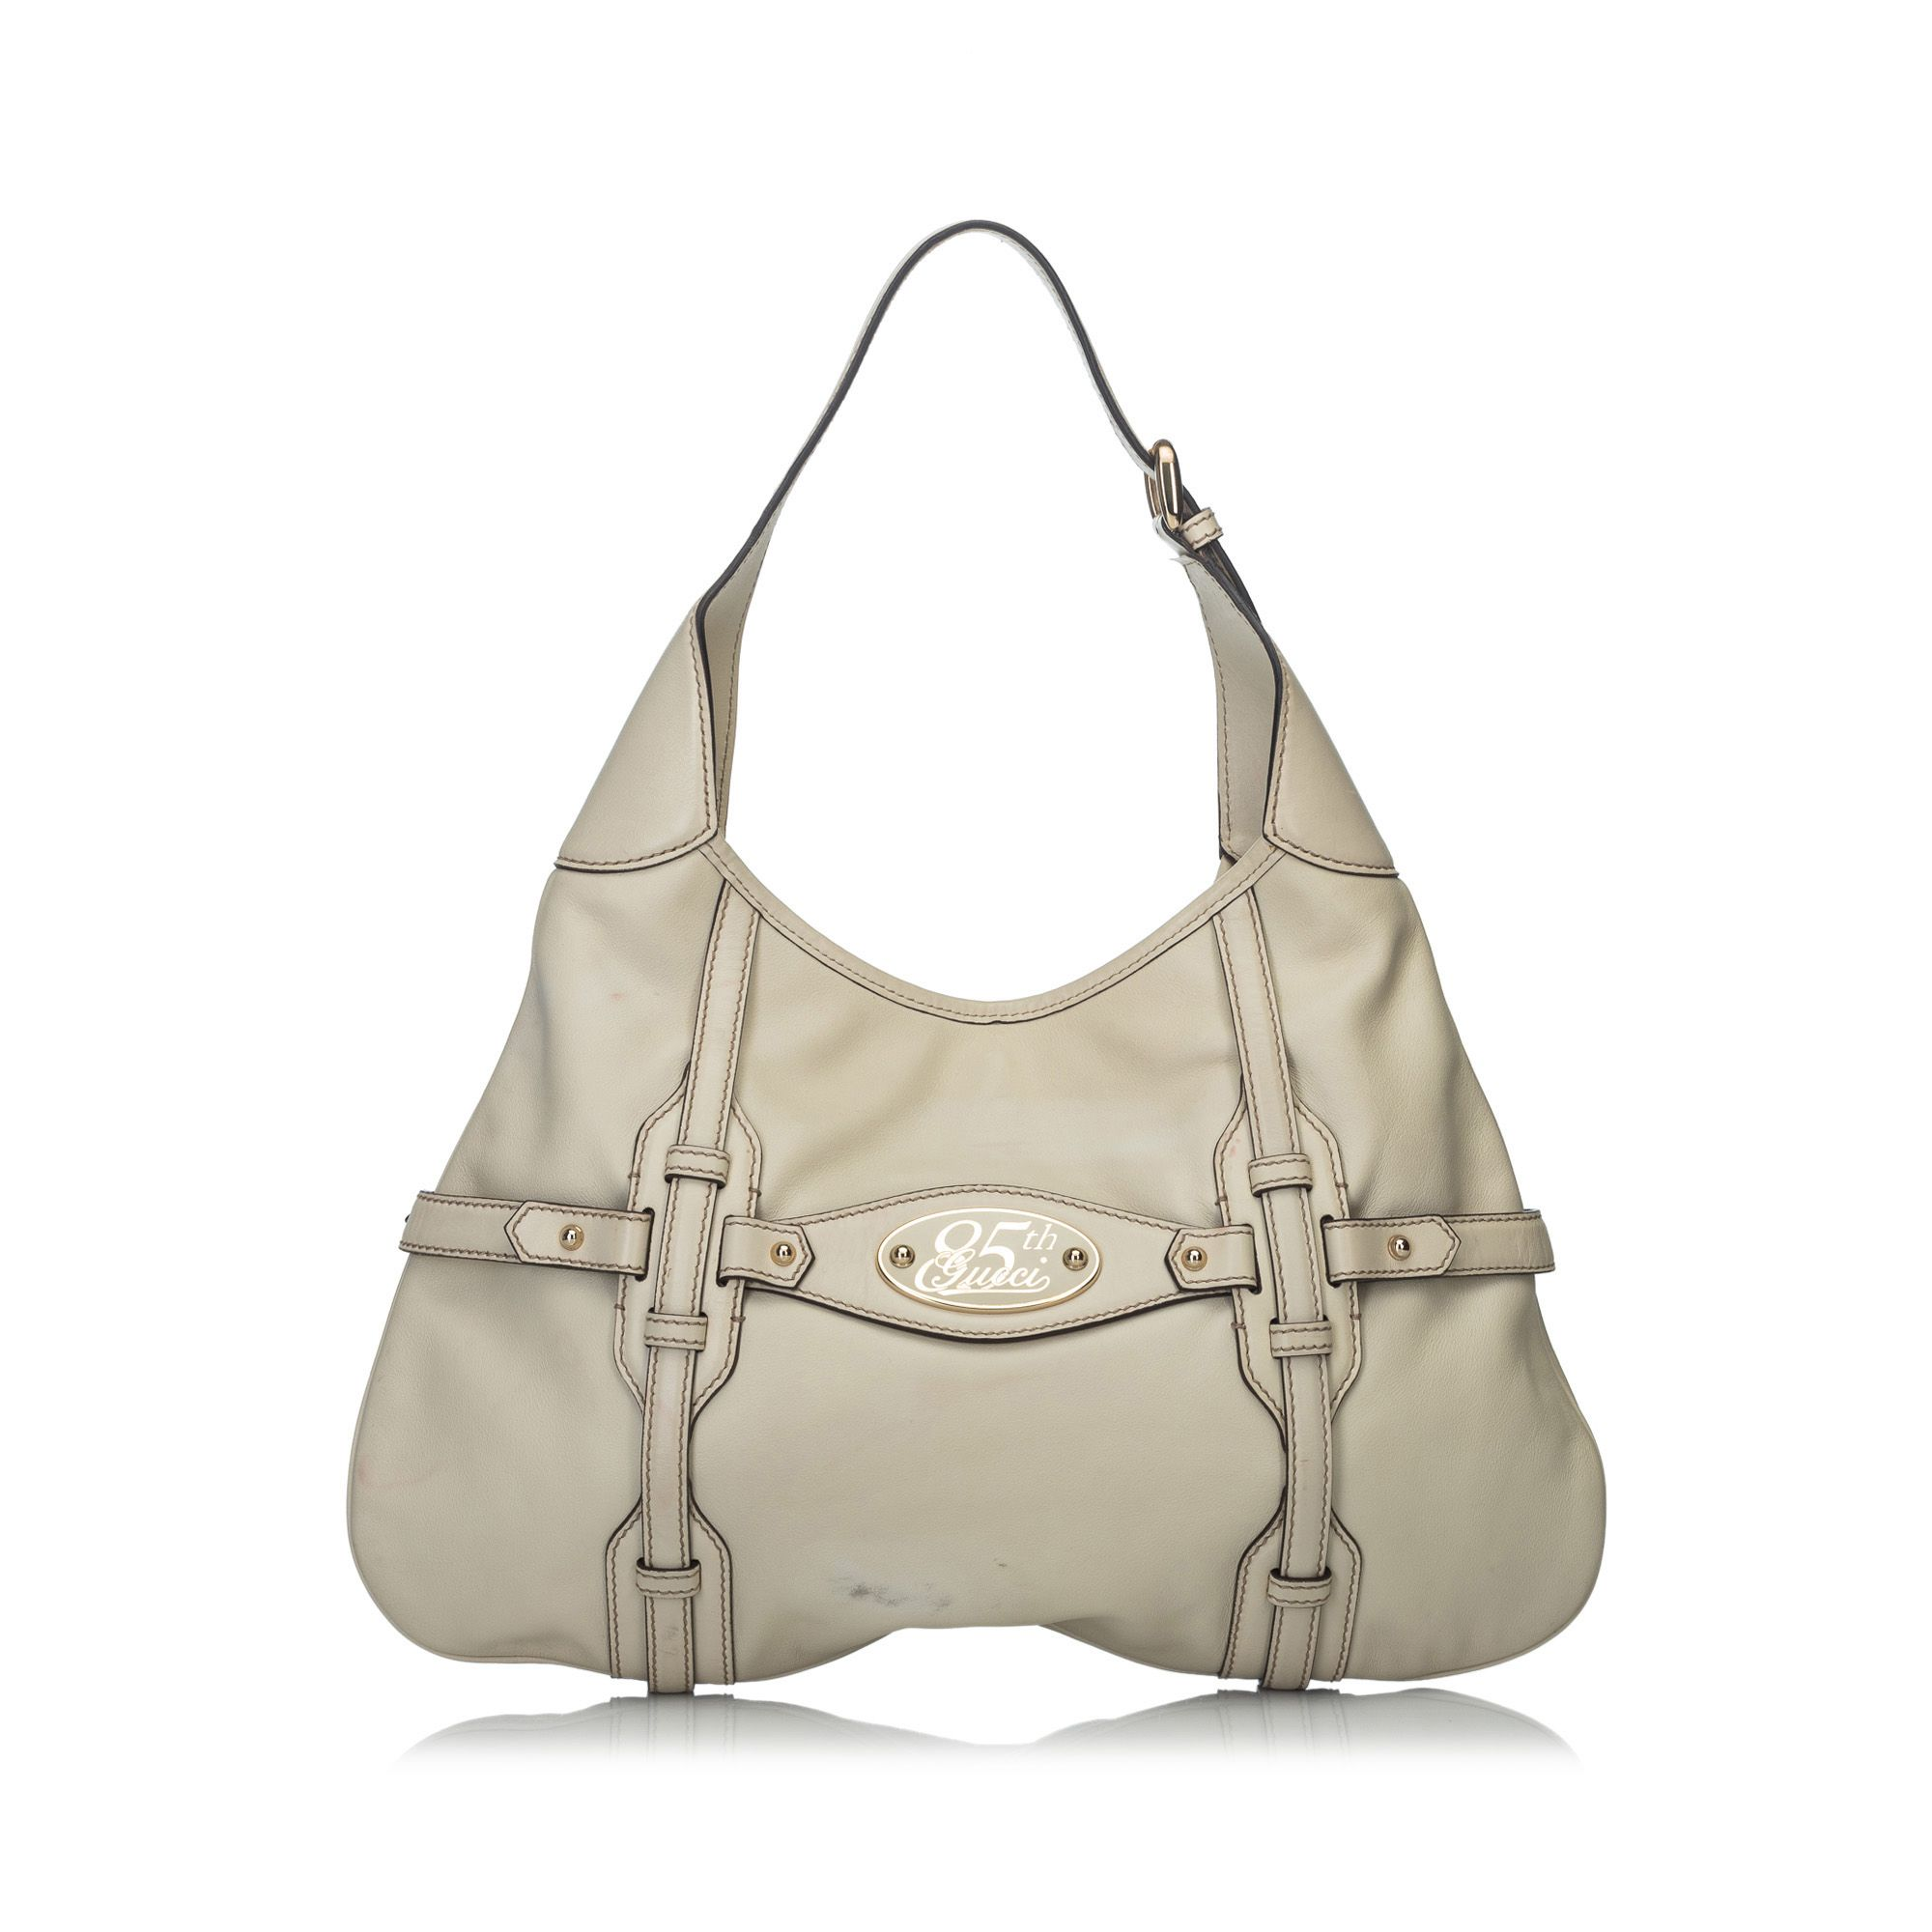 Vintage Gucci 85th Anniversary Leather Hobo Bag White